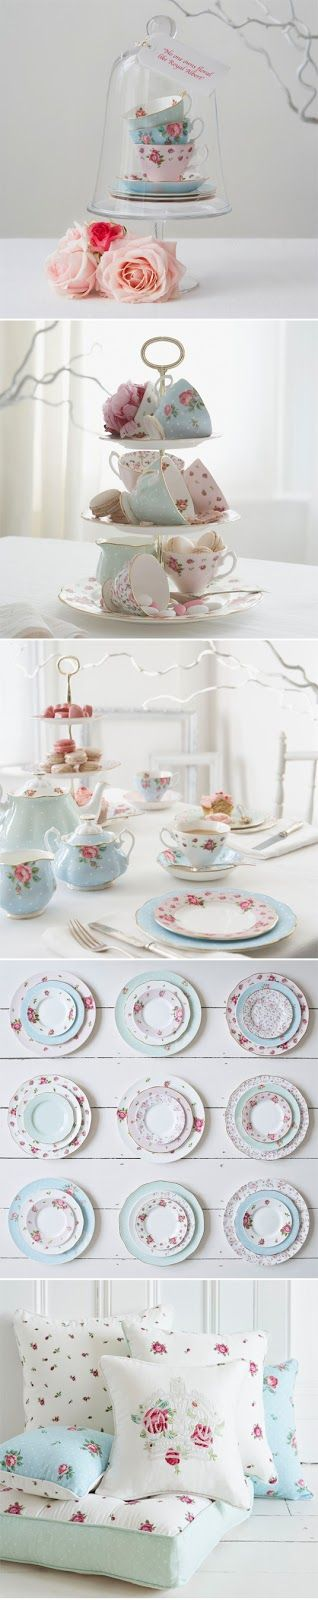 Share Tweet Pin Mail If yestedays visual pastel delights weren't enough to satisfy you then have a look at the Royal Doulton Royal Albert ...